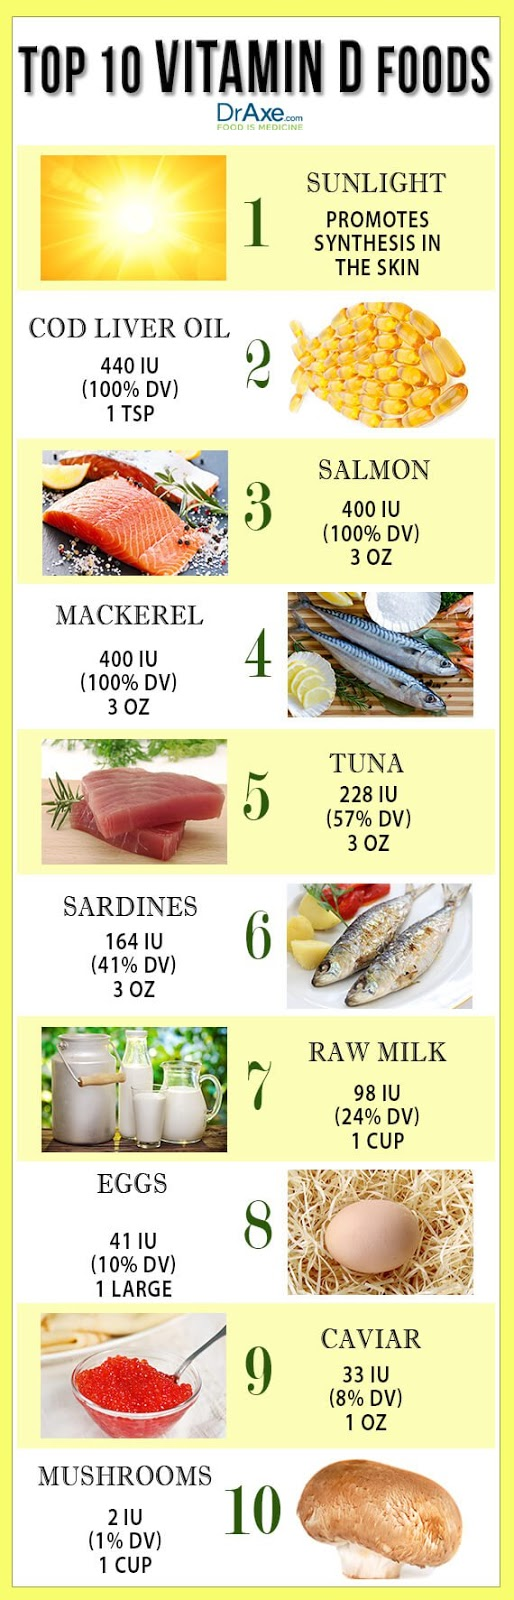 Top 10 Vitamin D Rich Foods